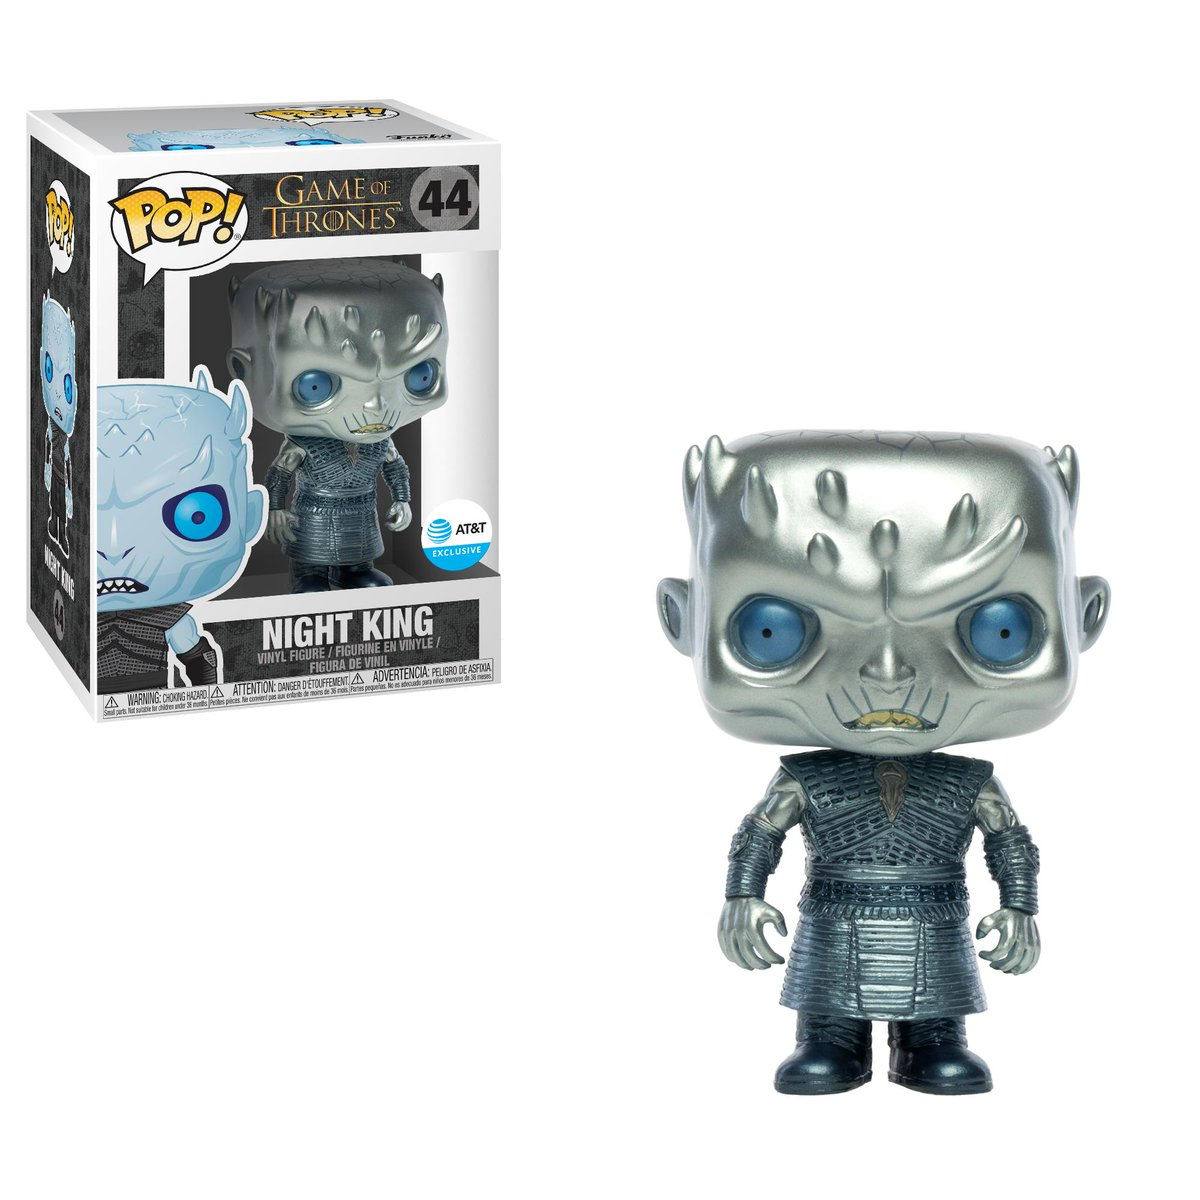 33 Night King From Game Of Thrones By Scepterdpinoy On: Game Of Thrones Series